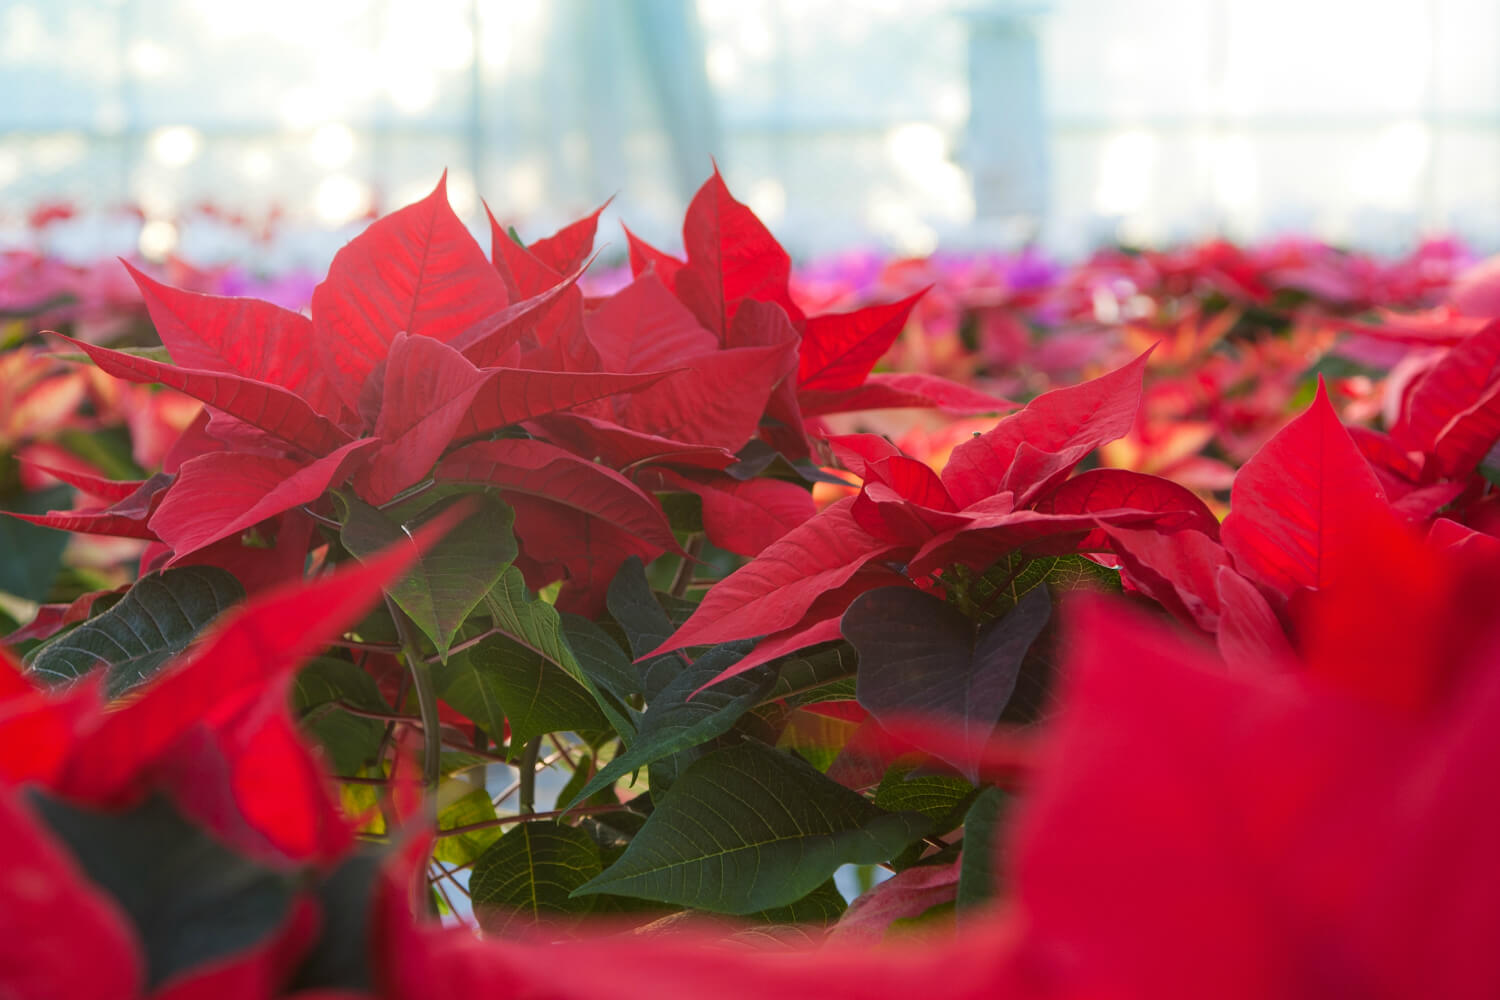 Photo Credit: Christmas Poinsettia, Staplehurst, by H Matthew Howarth; Creative Commons License